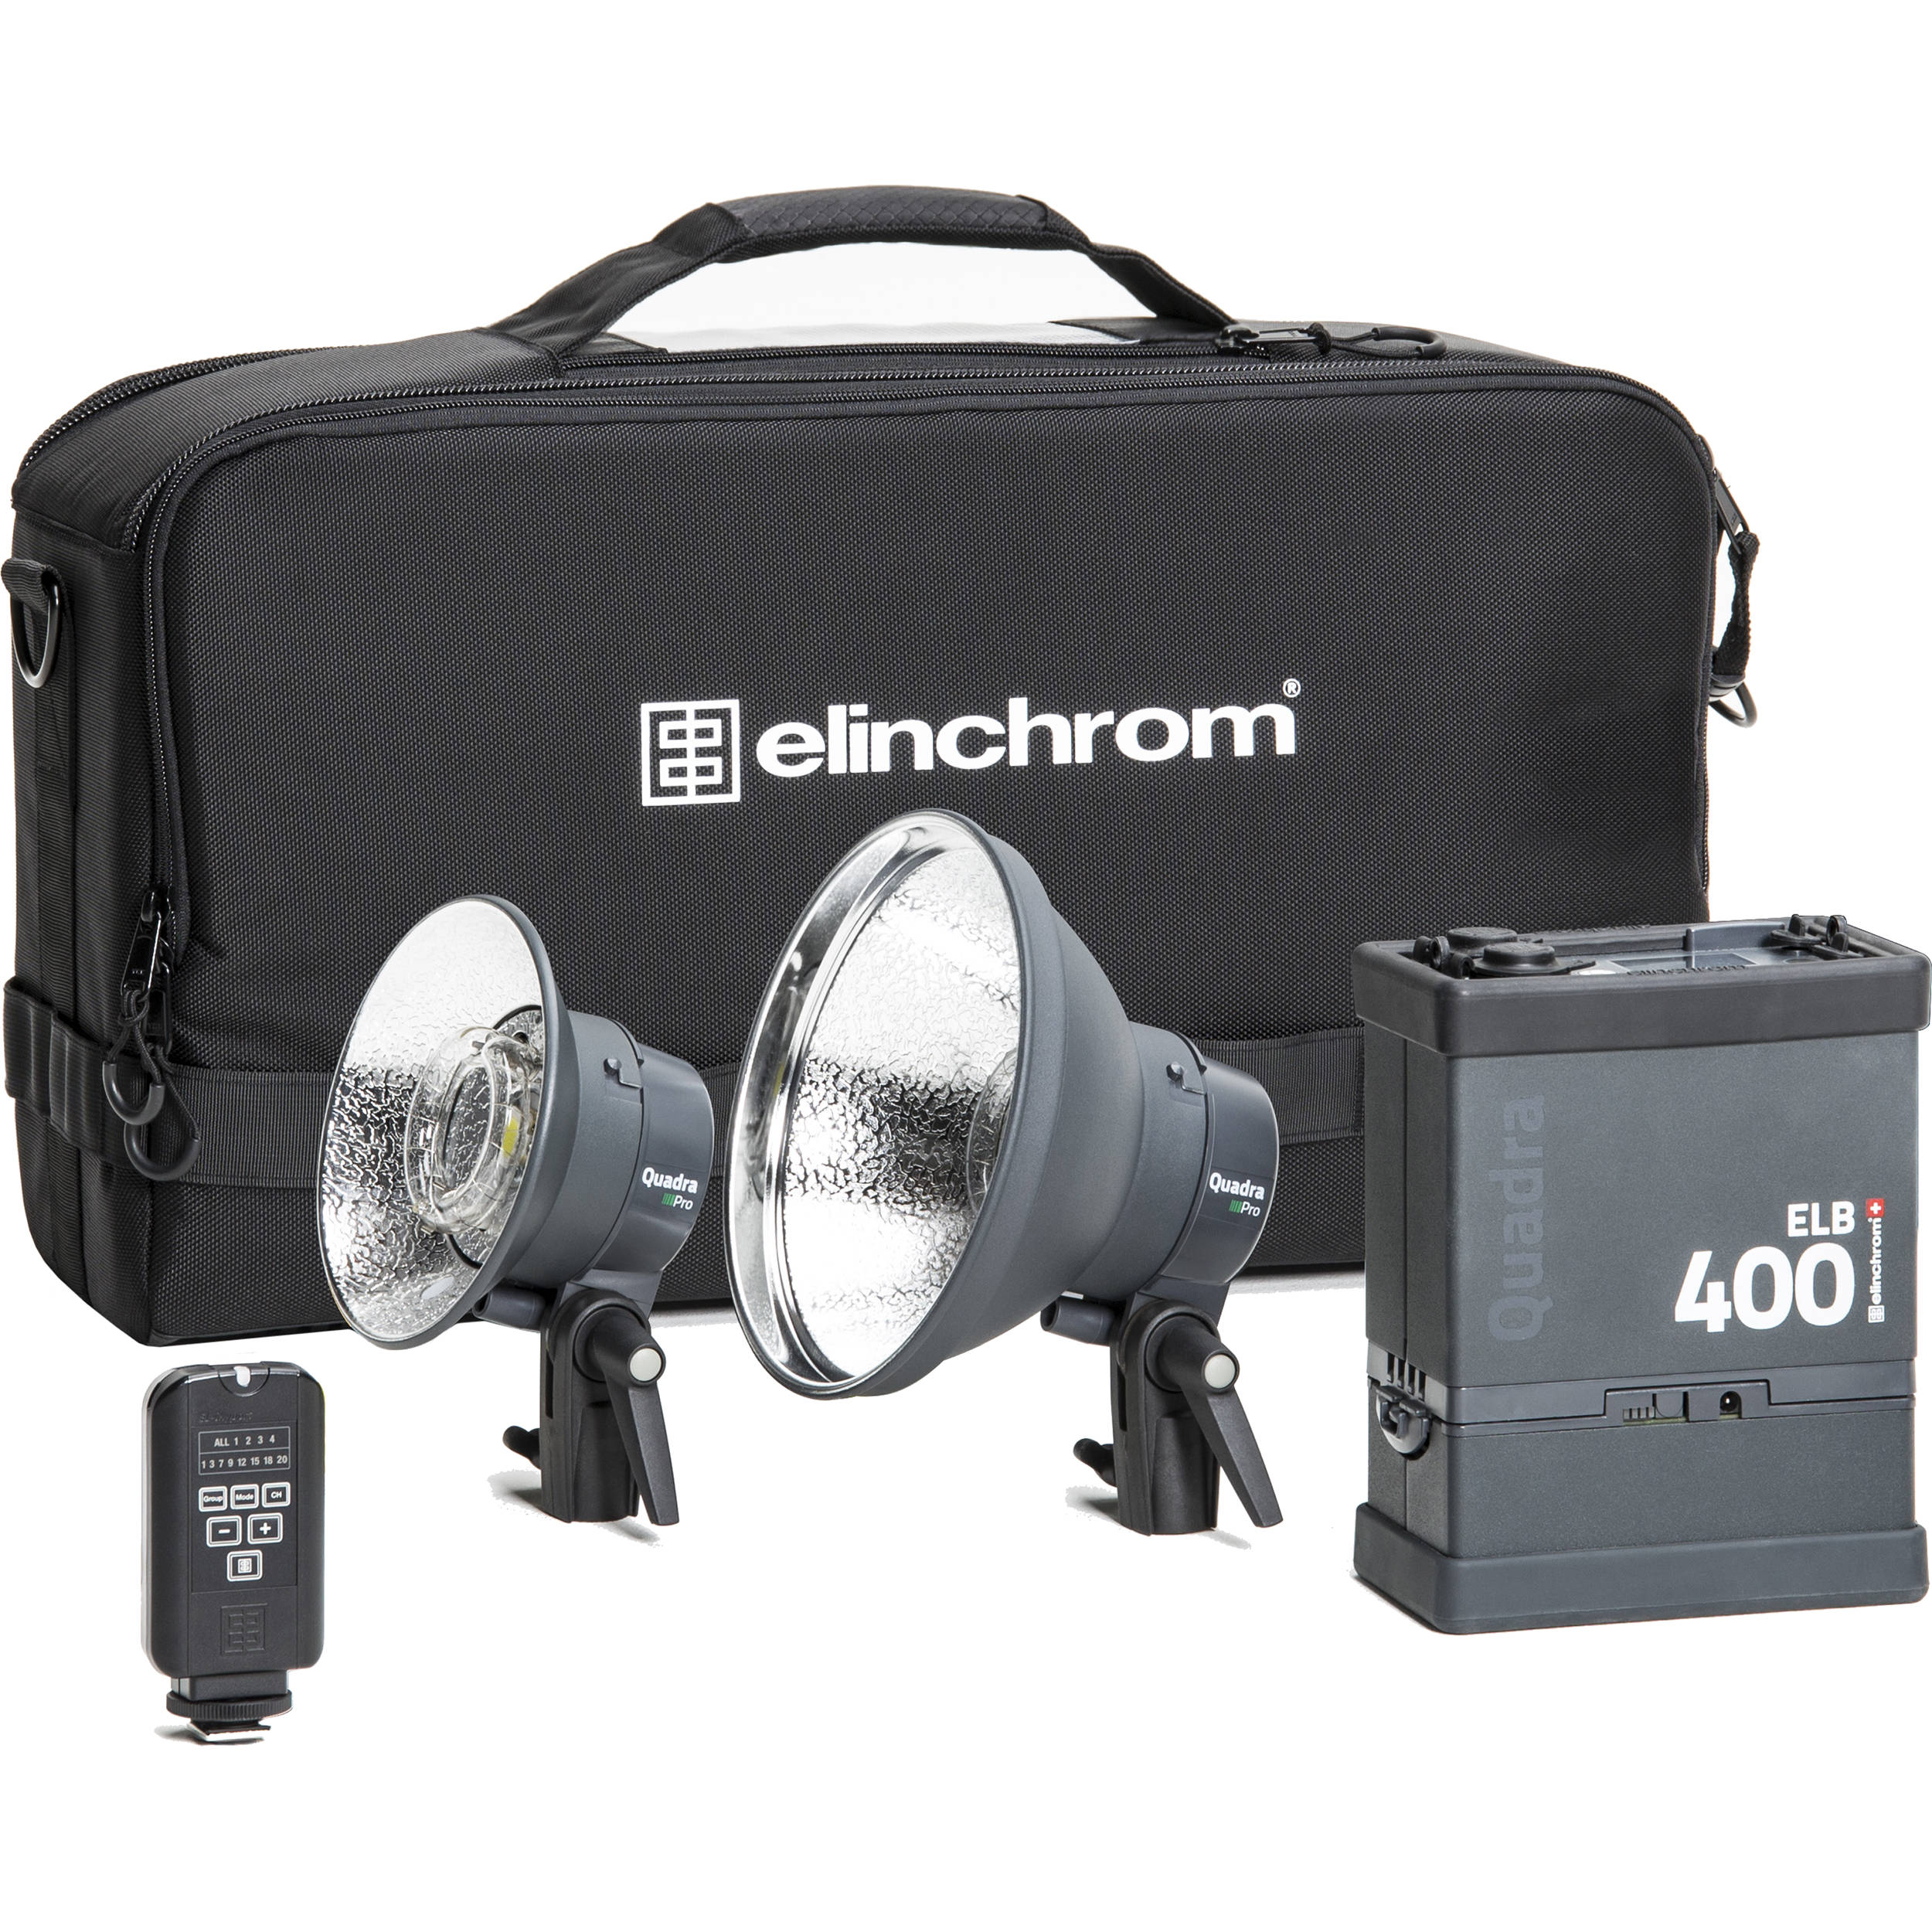 Elinchrom 500 Studio Lighting Kit: Elinchrom ELB 400 Dual Pro To Go Kit EL10420.1 B&H Photo Video